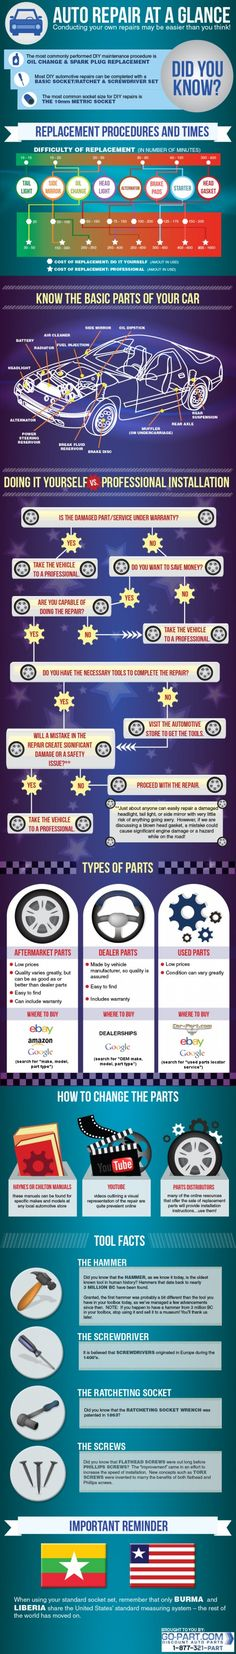 Auto Repair At A Glance – Infographic on http://www.bestinfographic.co.uk